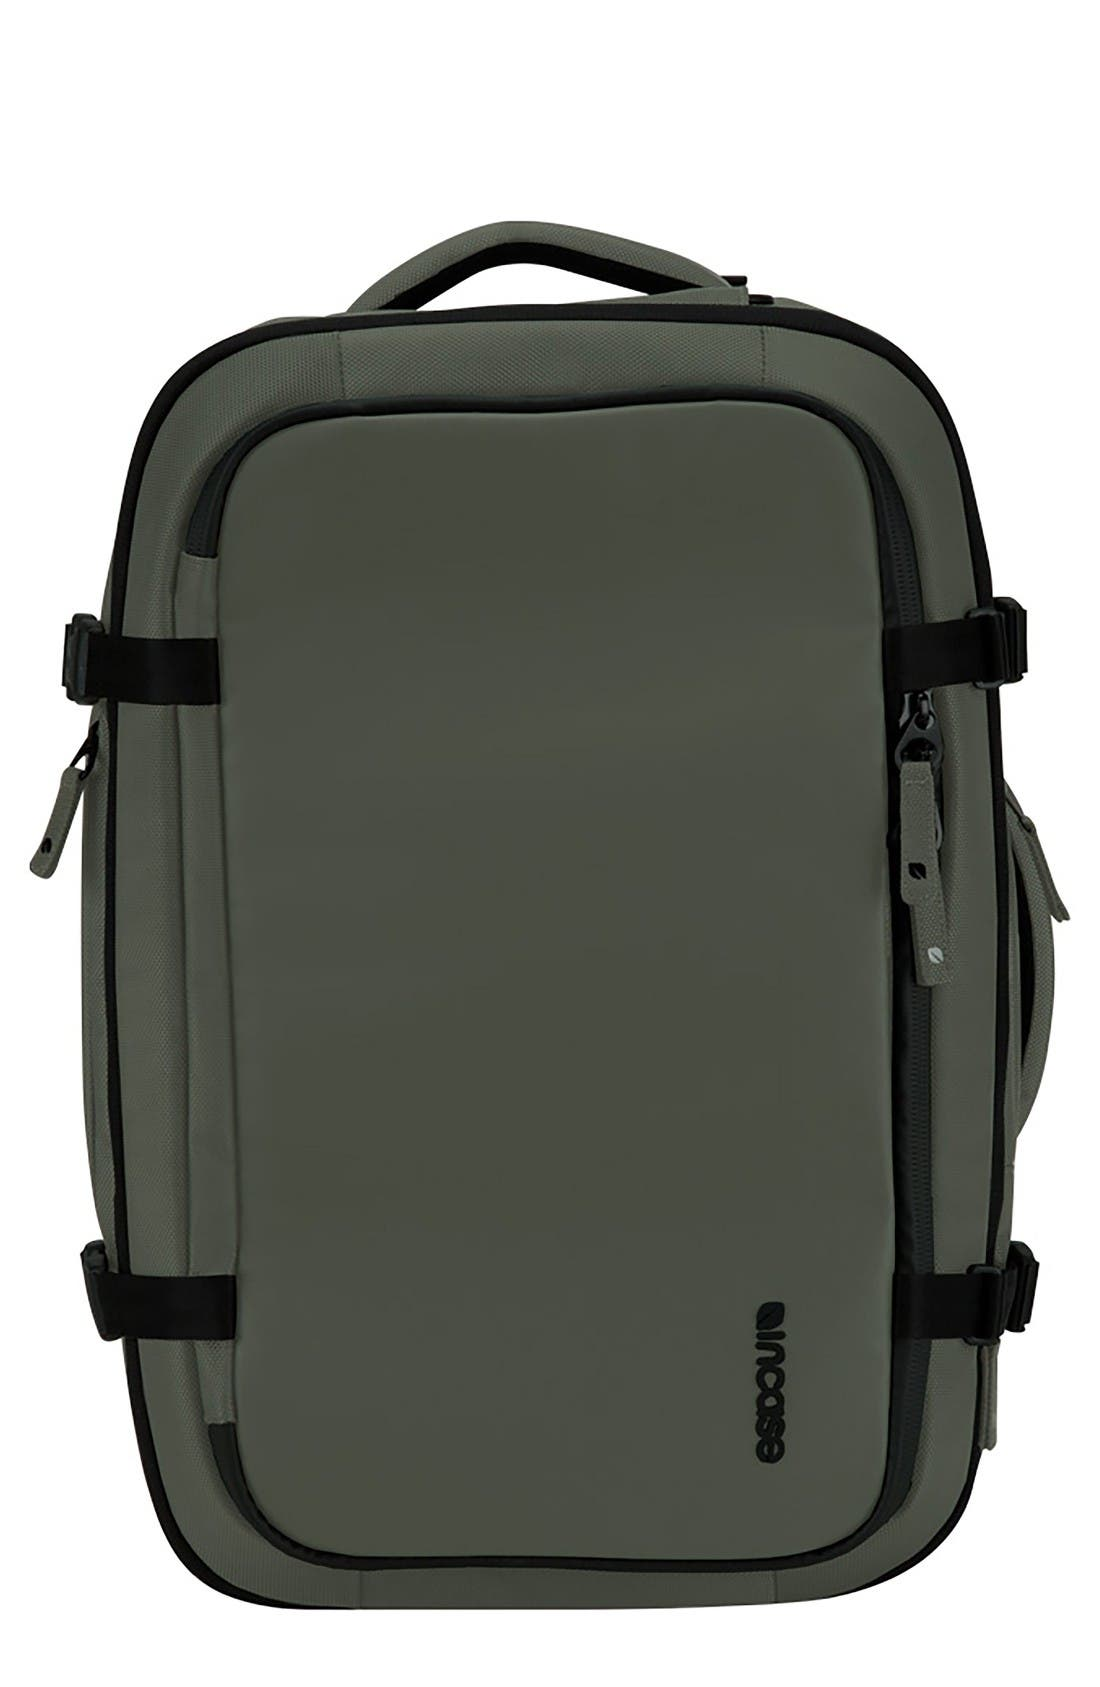 TRACTO Convertible Backpack,                         Main,                         color, Anthracite